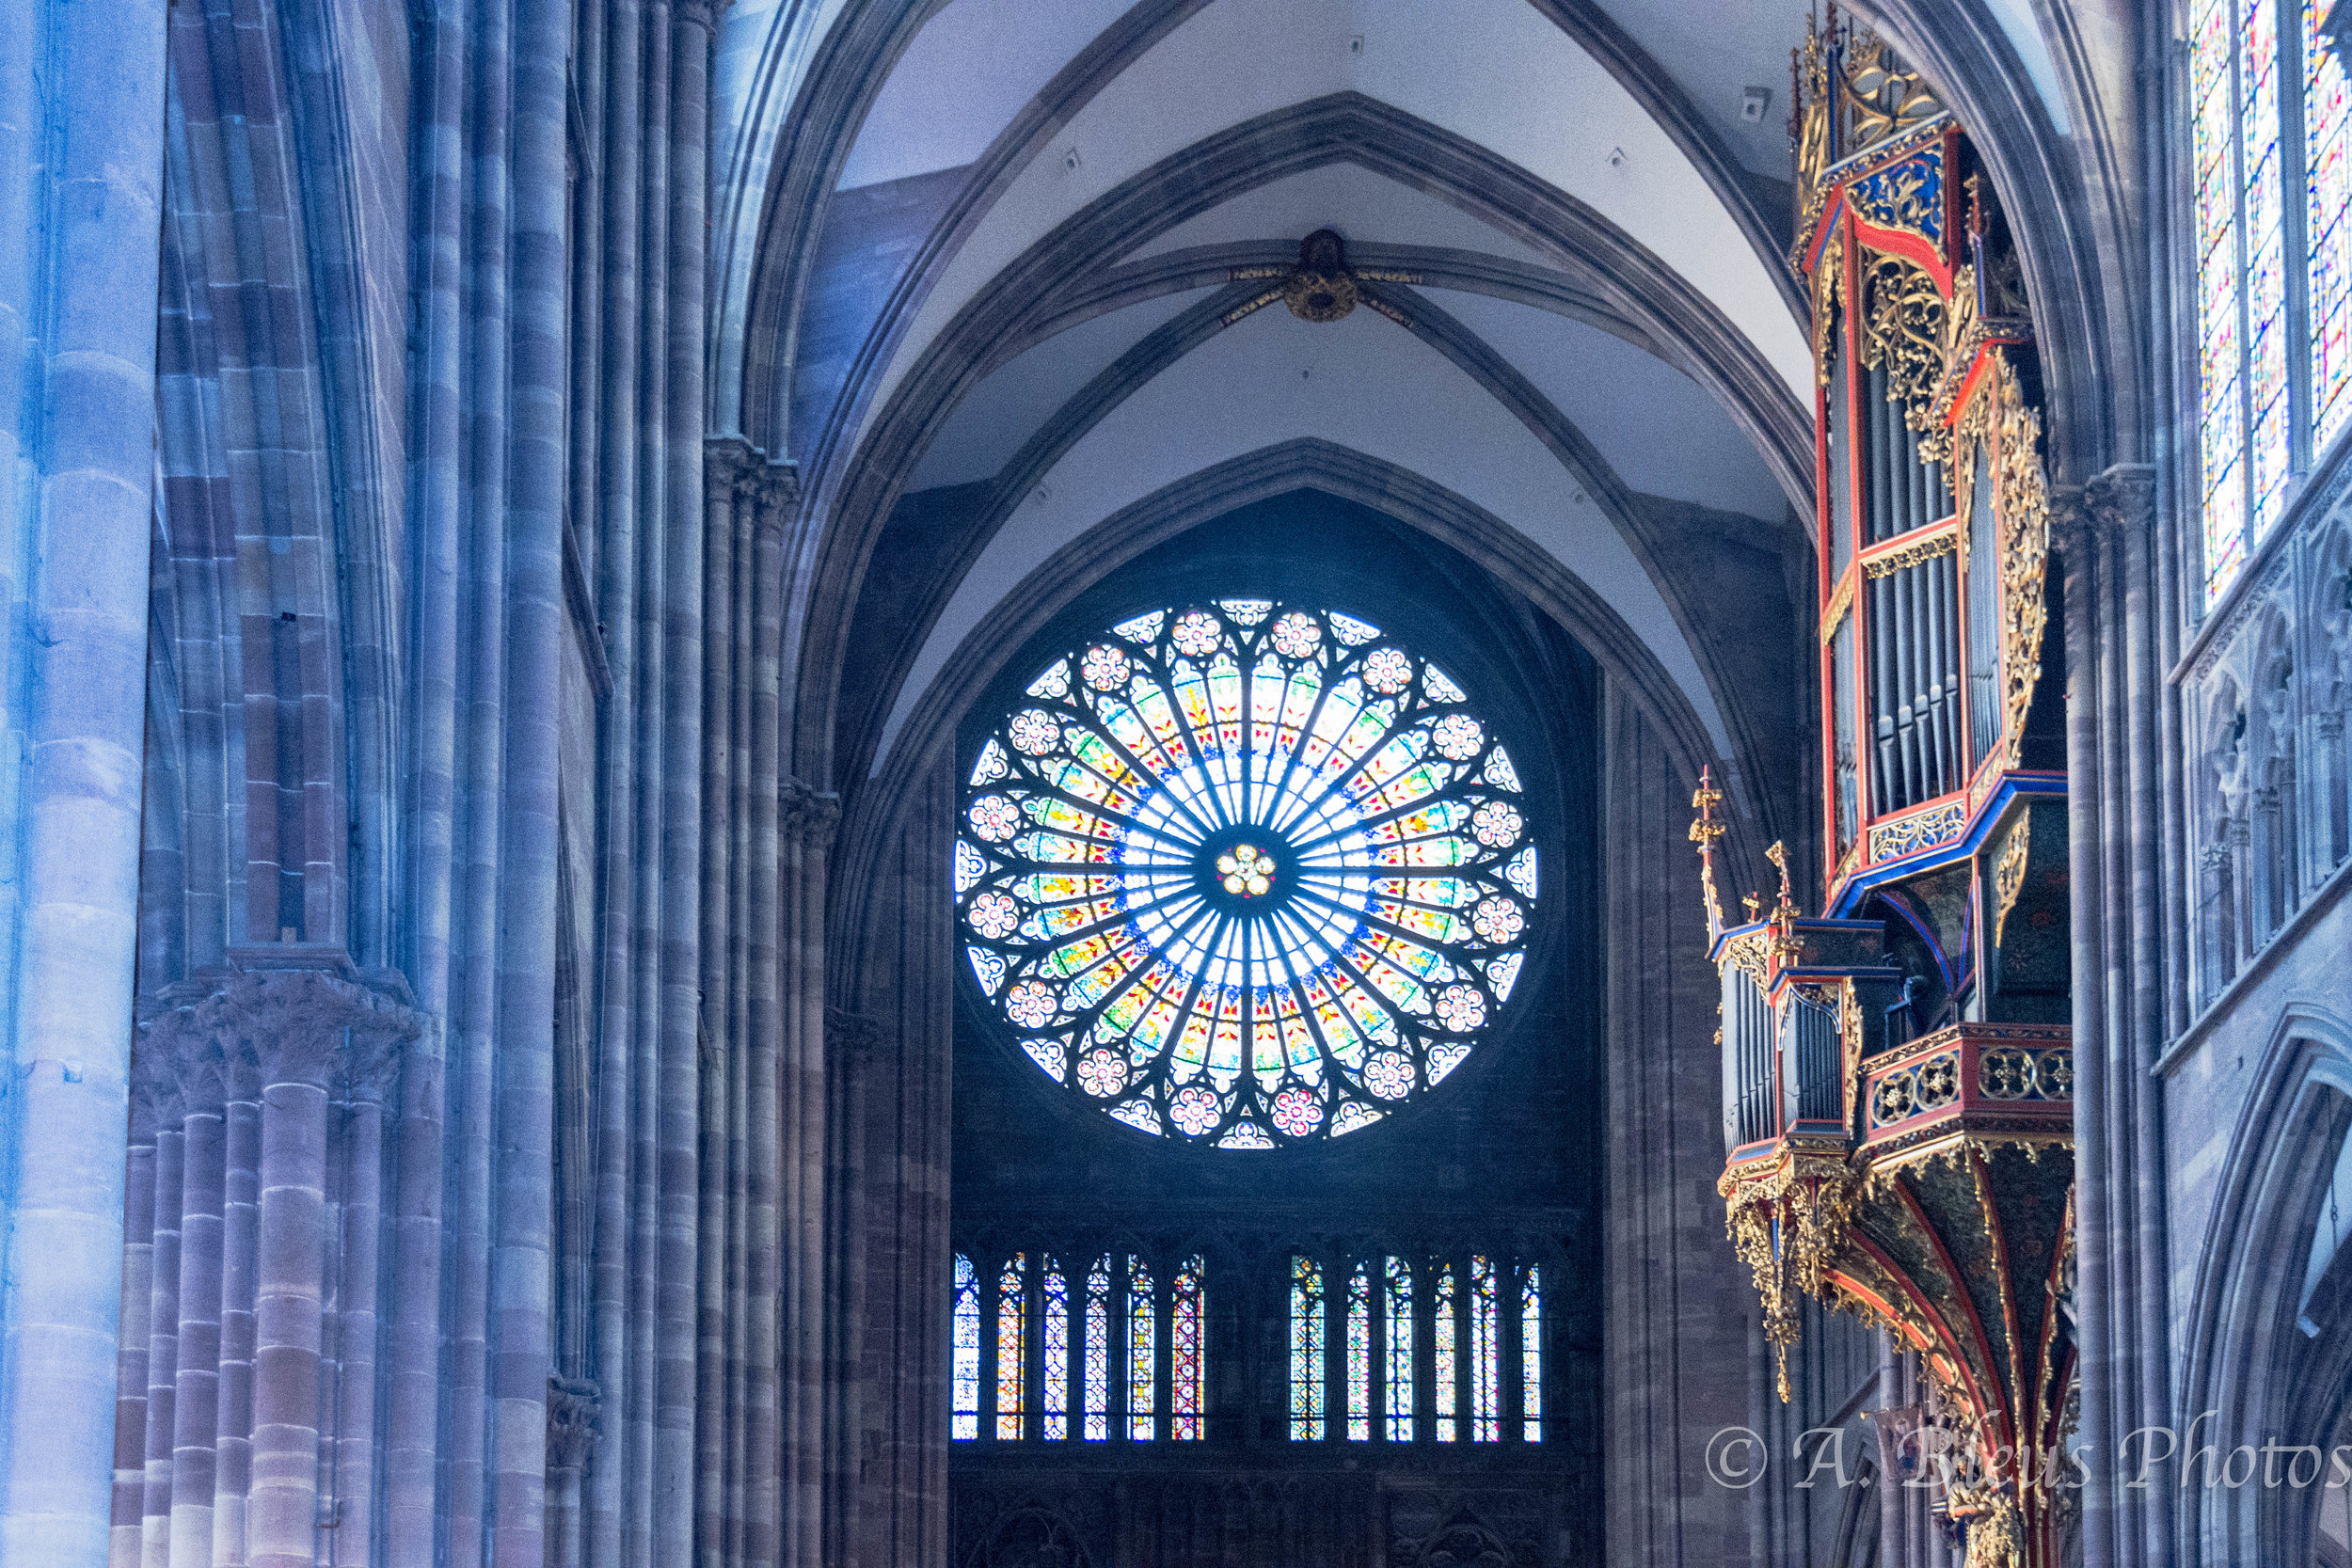 suspended-pipe-organ-and-stained-glass-strasbourg-cathedral.jpg